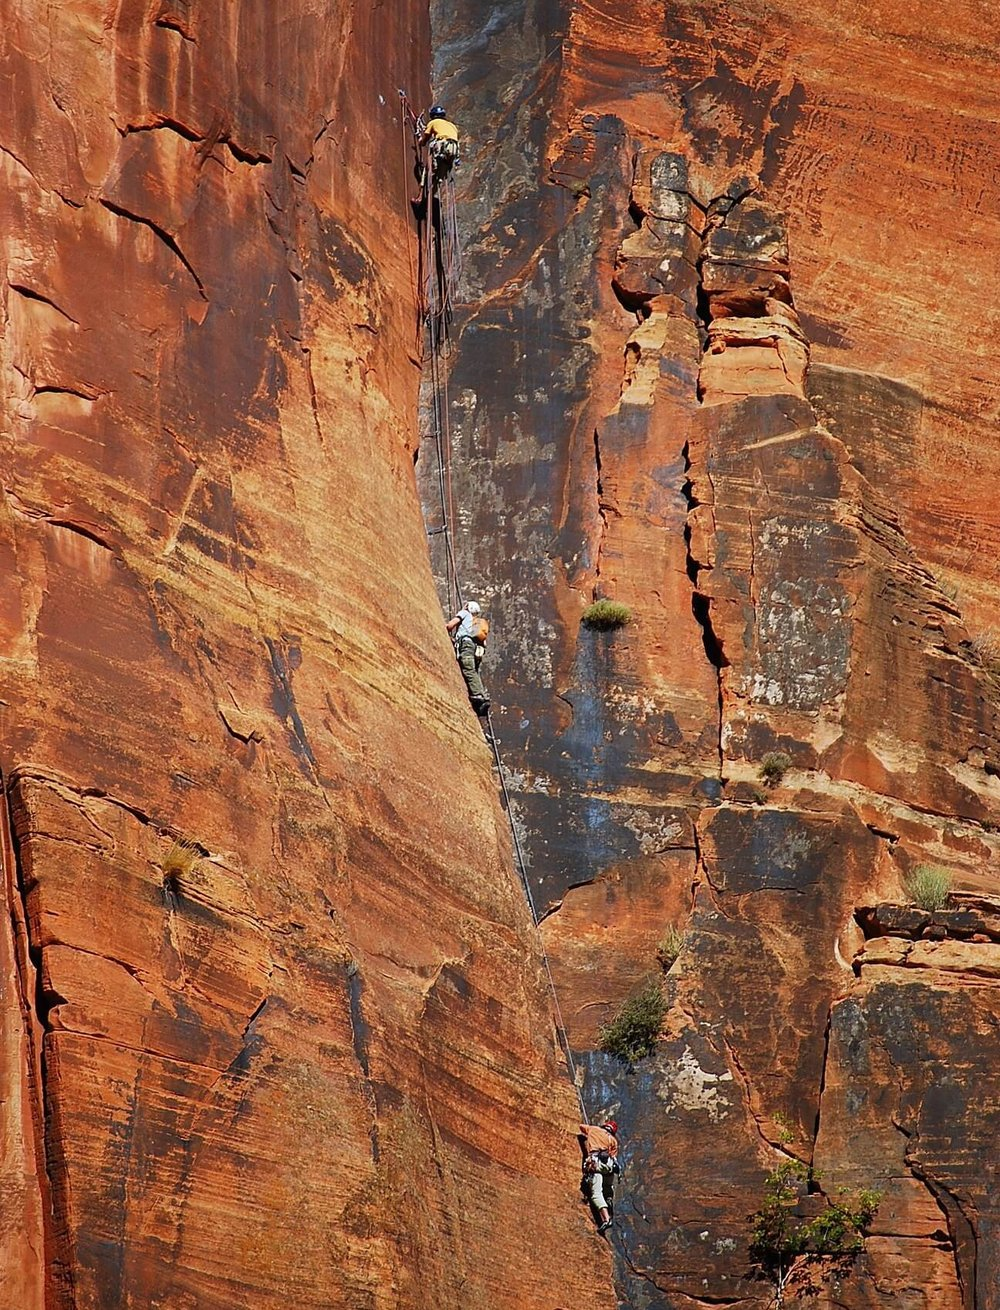 Rock Climbing in Zion - Climbing came to the area in 1927 with the first recorded ascent of the Great White Throne by